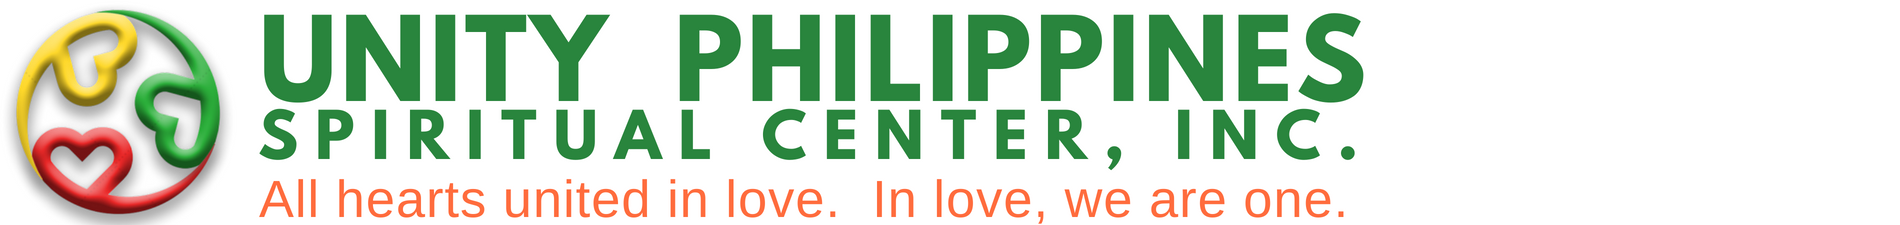 Unity Philippines Spritual Center | All hearts united in love. In love, we are one!